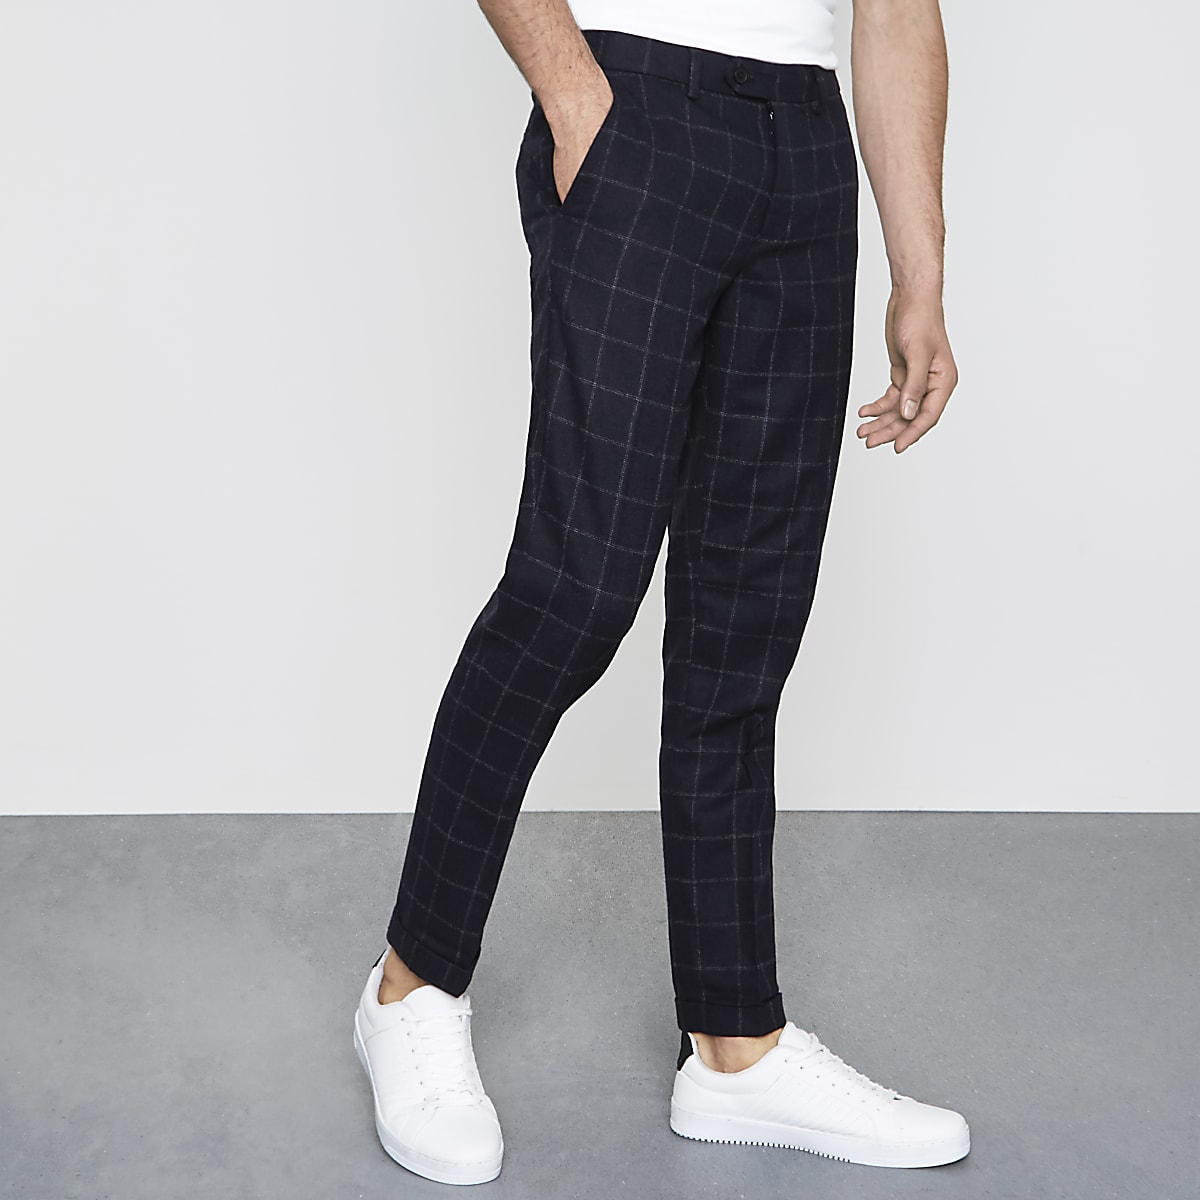 9d746977 Navy check skinny fit smart trousers - Smart Trousers - Trousers - men